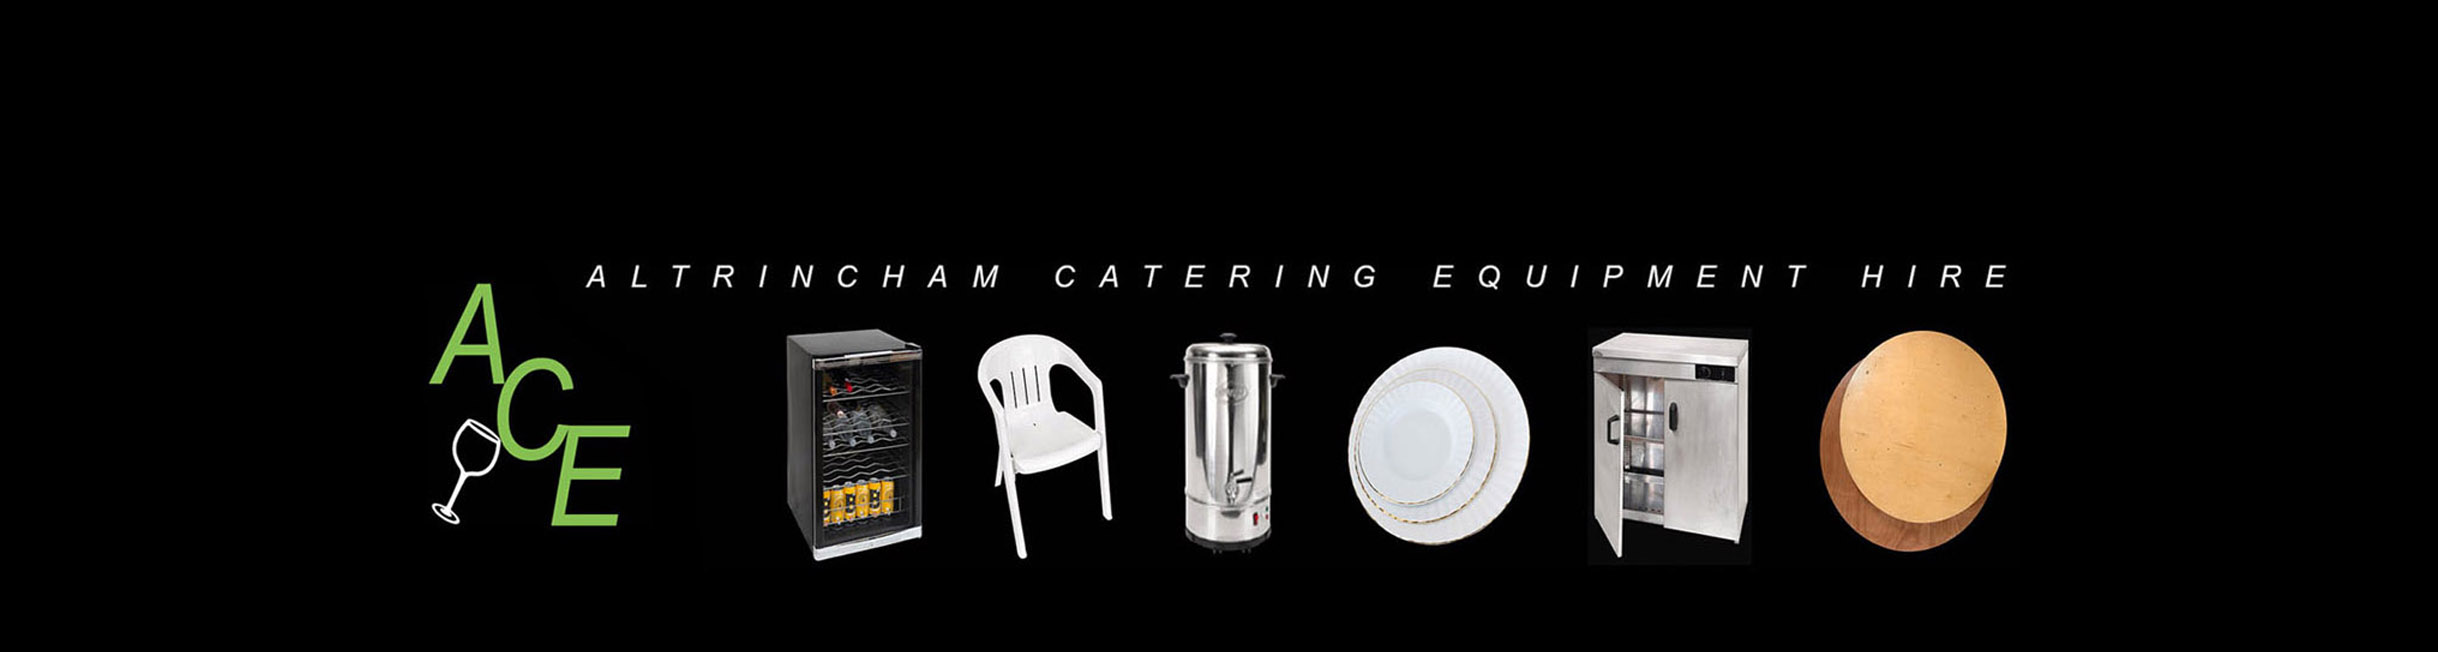 Catering equipment hire testimonials